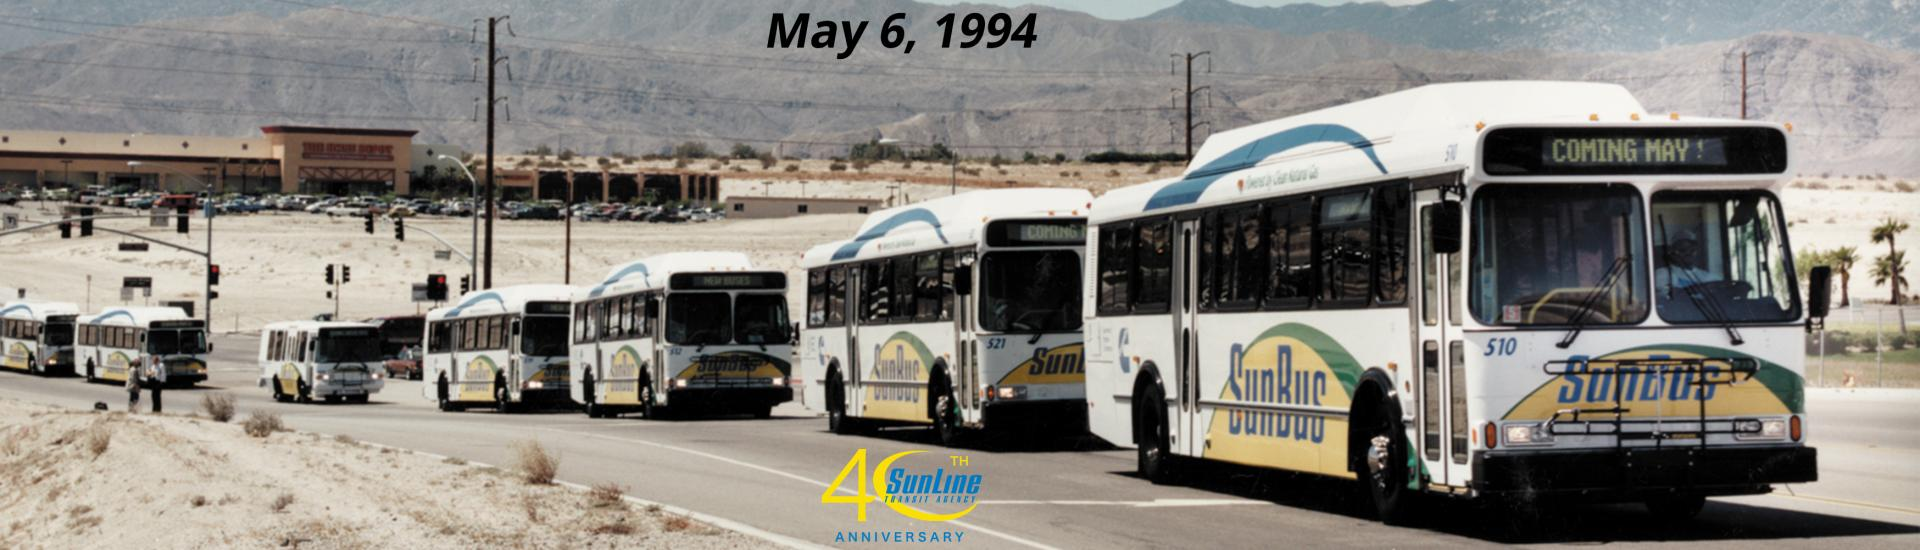 Complete CNG Roll-Out 6 May 1994